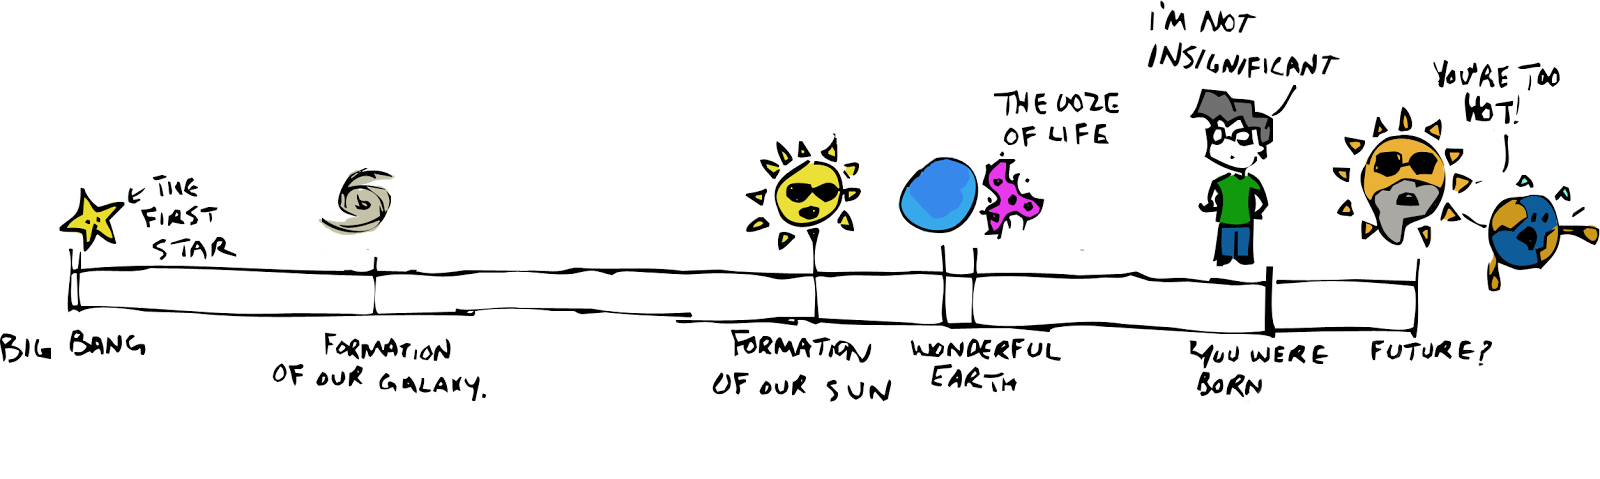 Sketchy Science Life And Death In The Goldilocks Zone The Shifting Scope Of Planetary Habitability